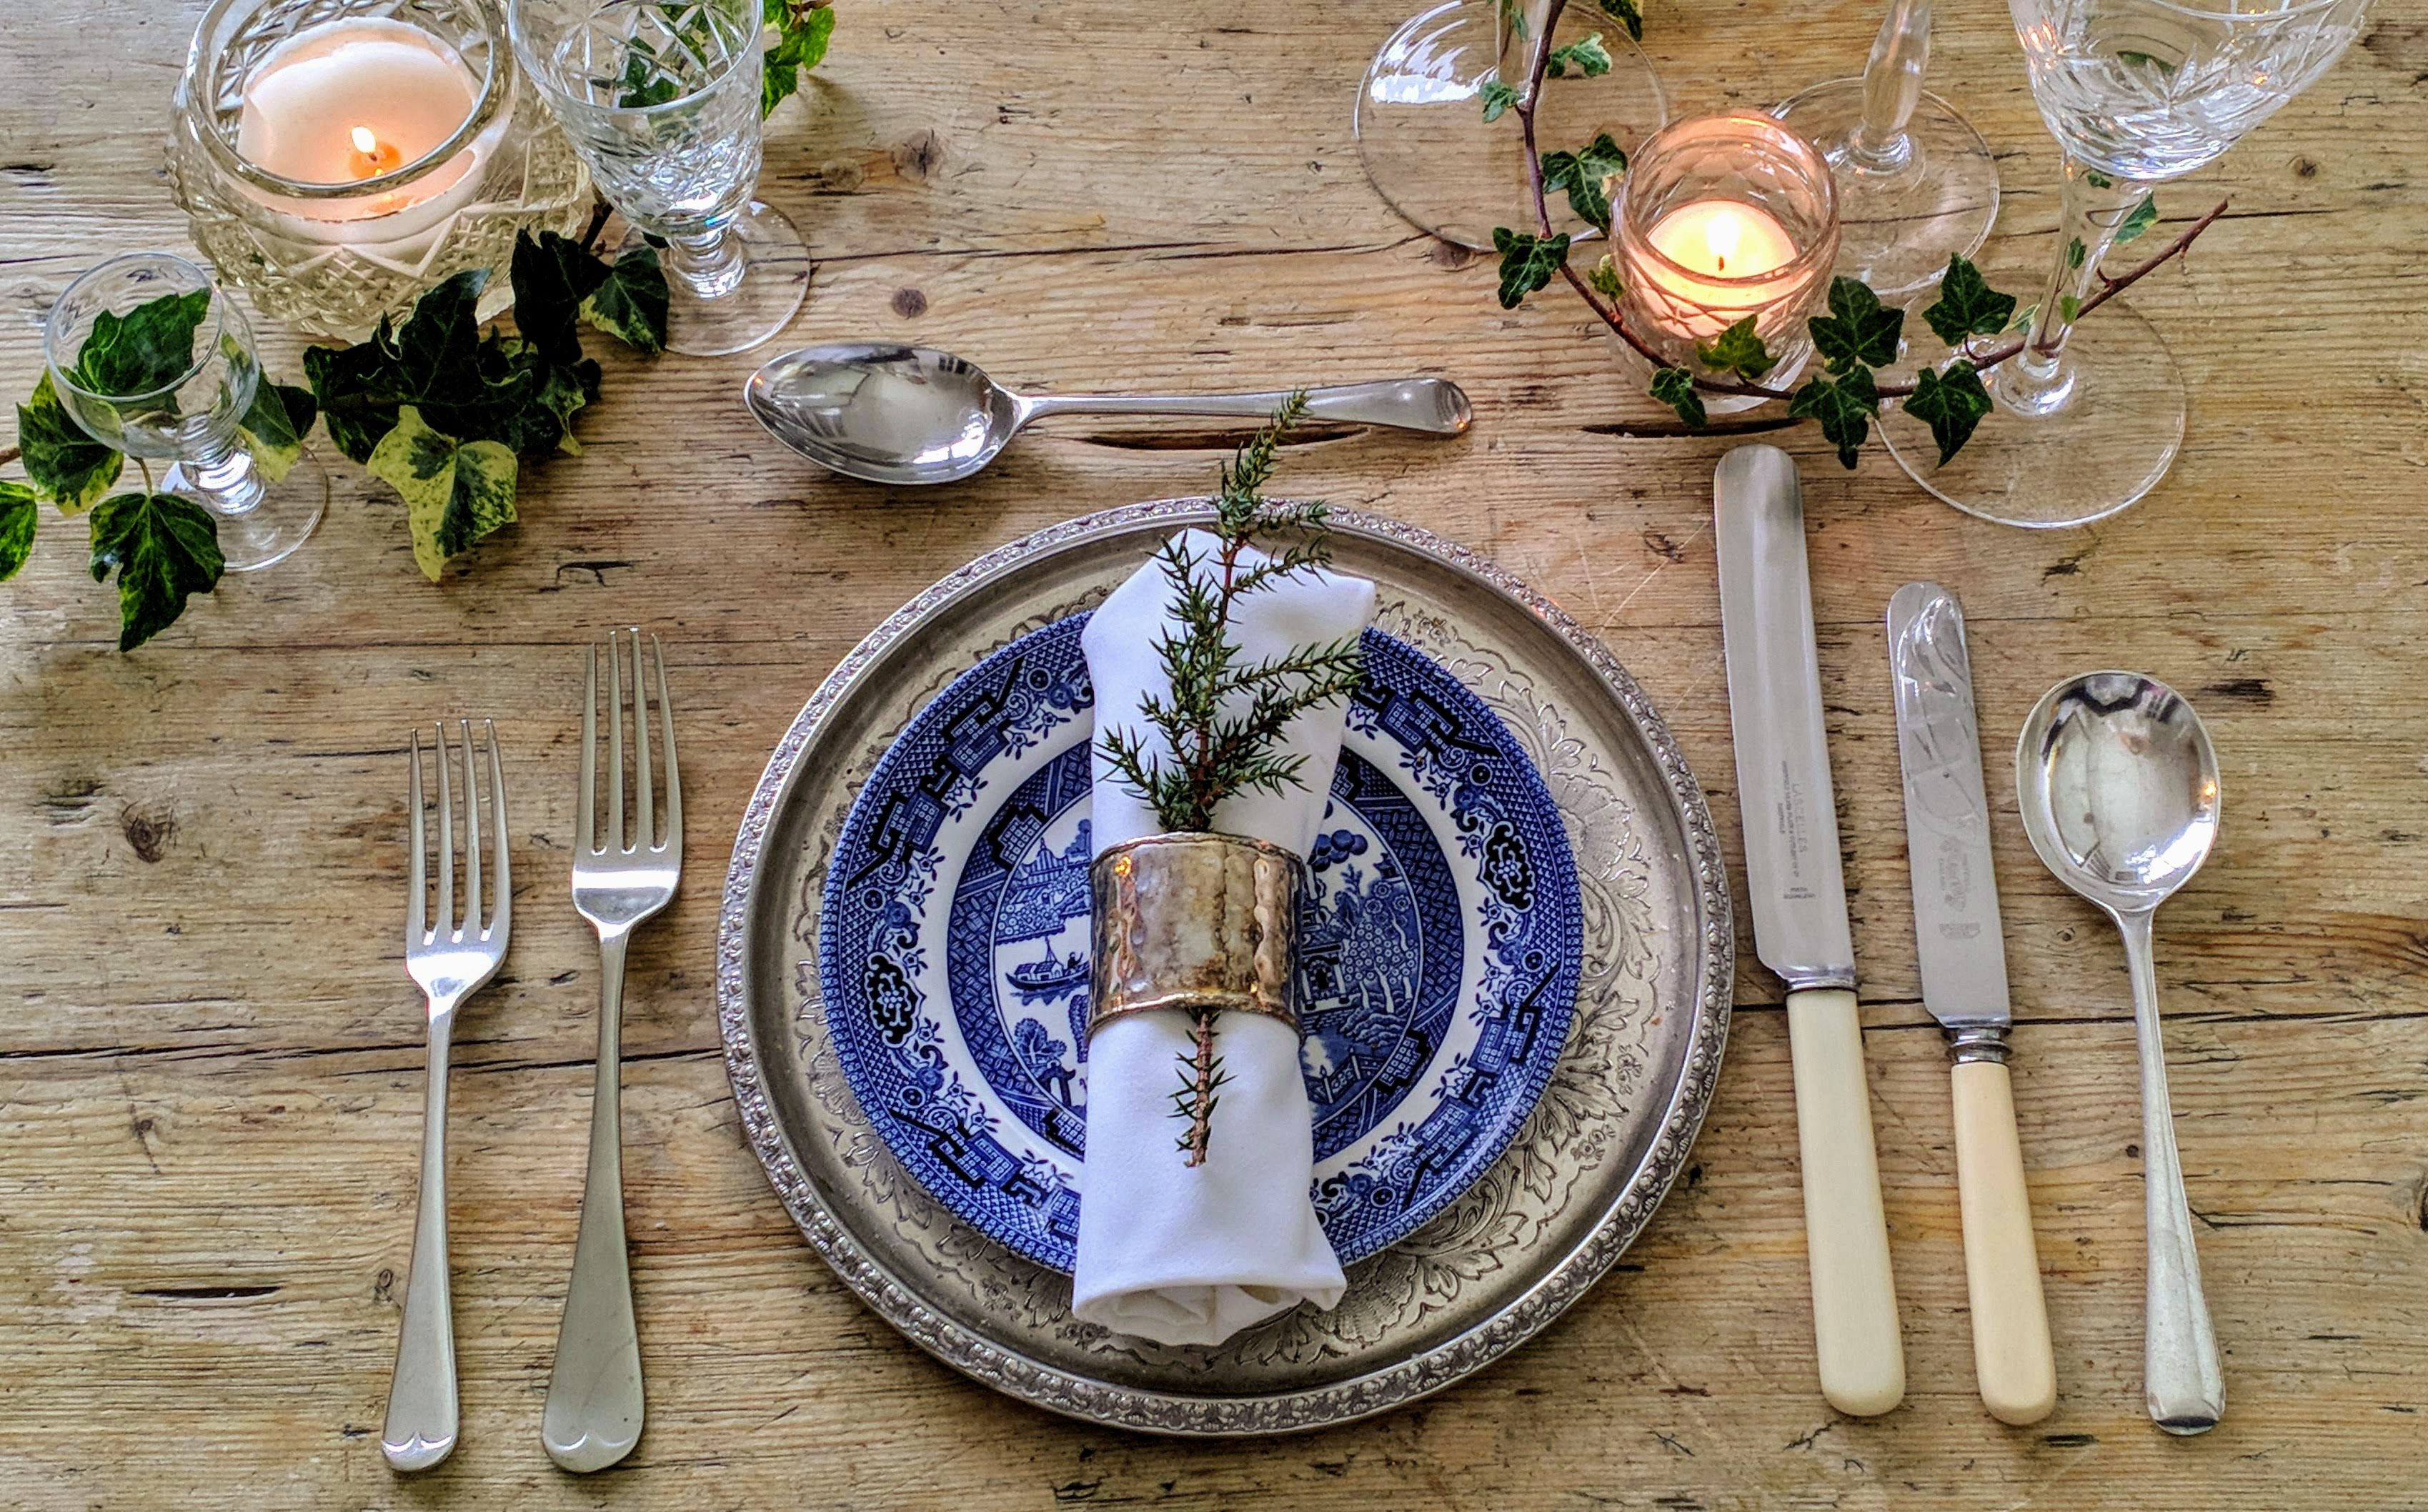 Old English place setting